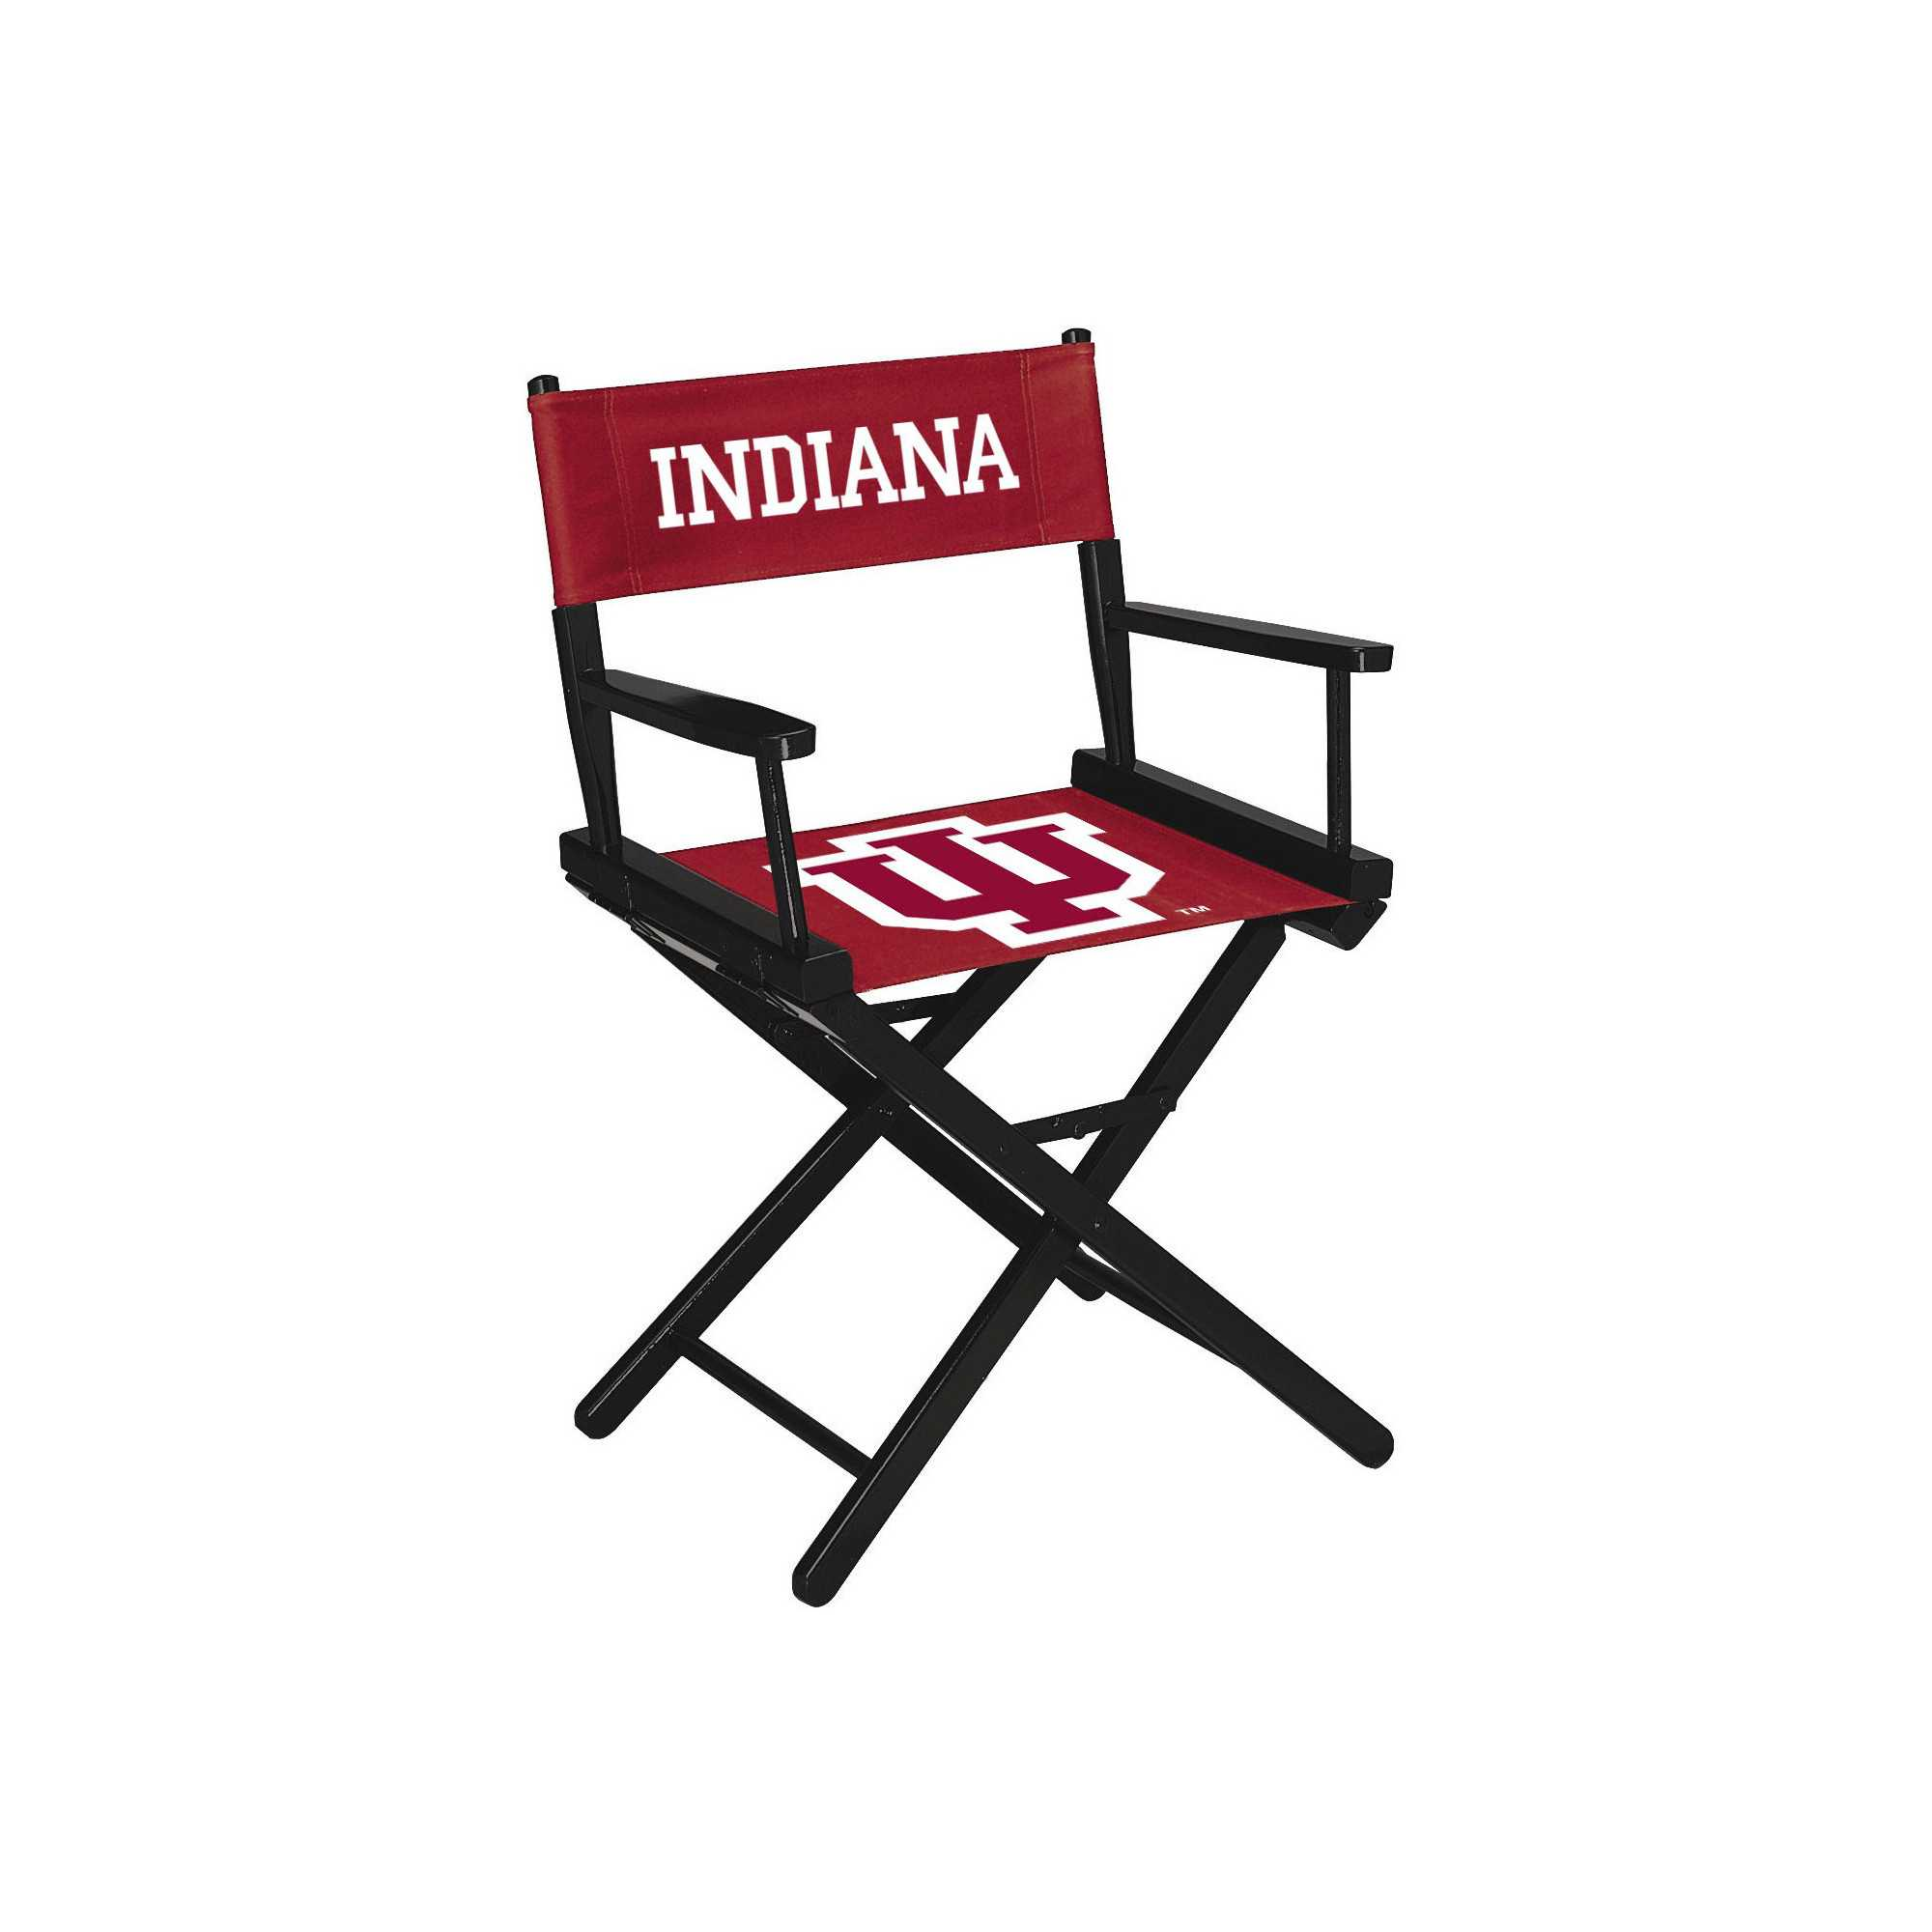 INDIANA UNIVERSITY DIRECTOR CHAIR -TABLE HEIGHT